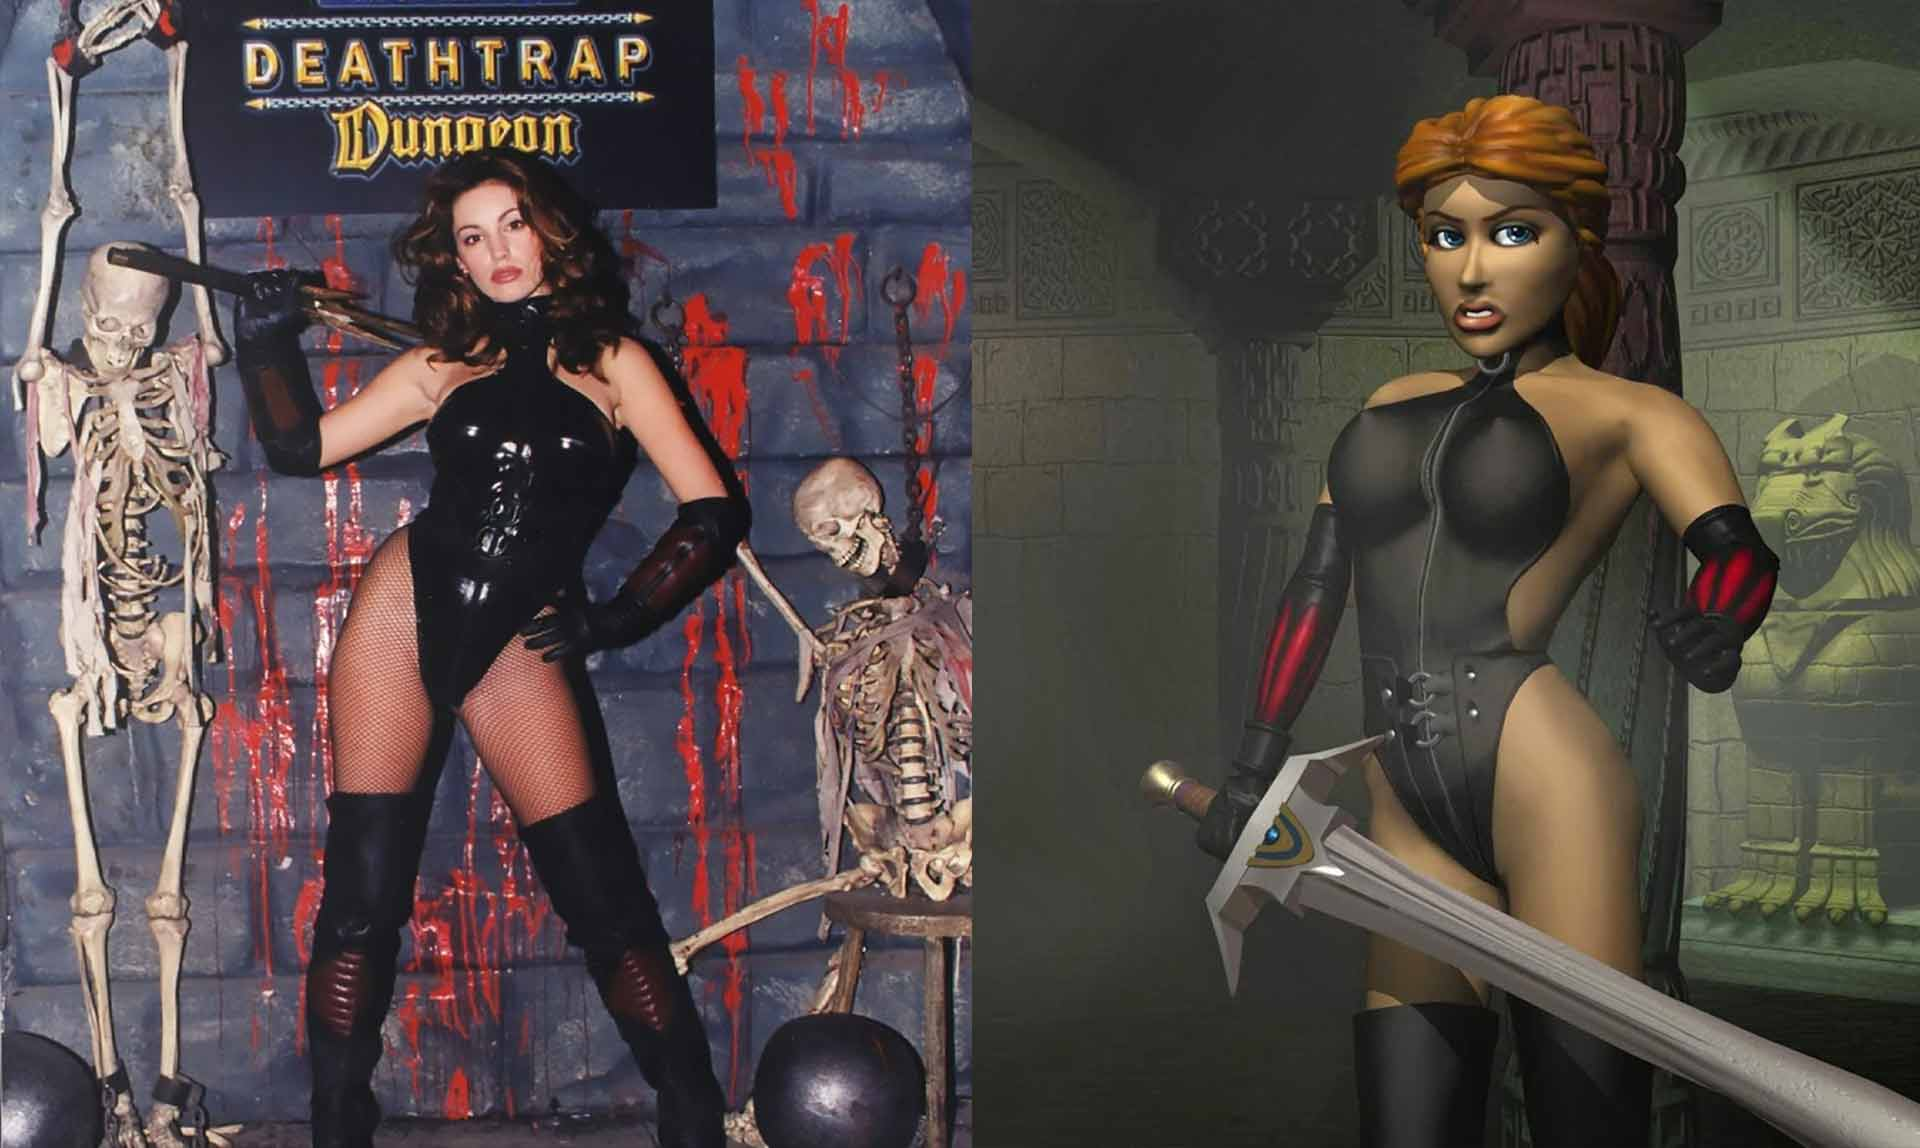 Kelly Brook promoting Deathtrap Dungeon back in 1998.